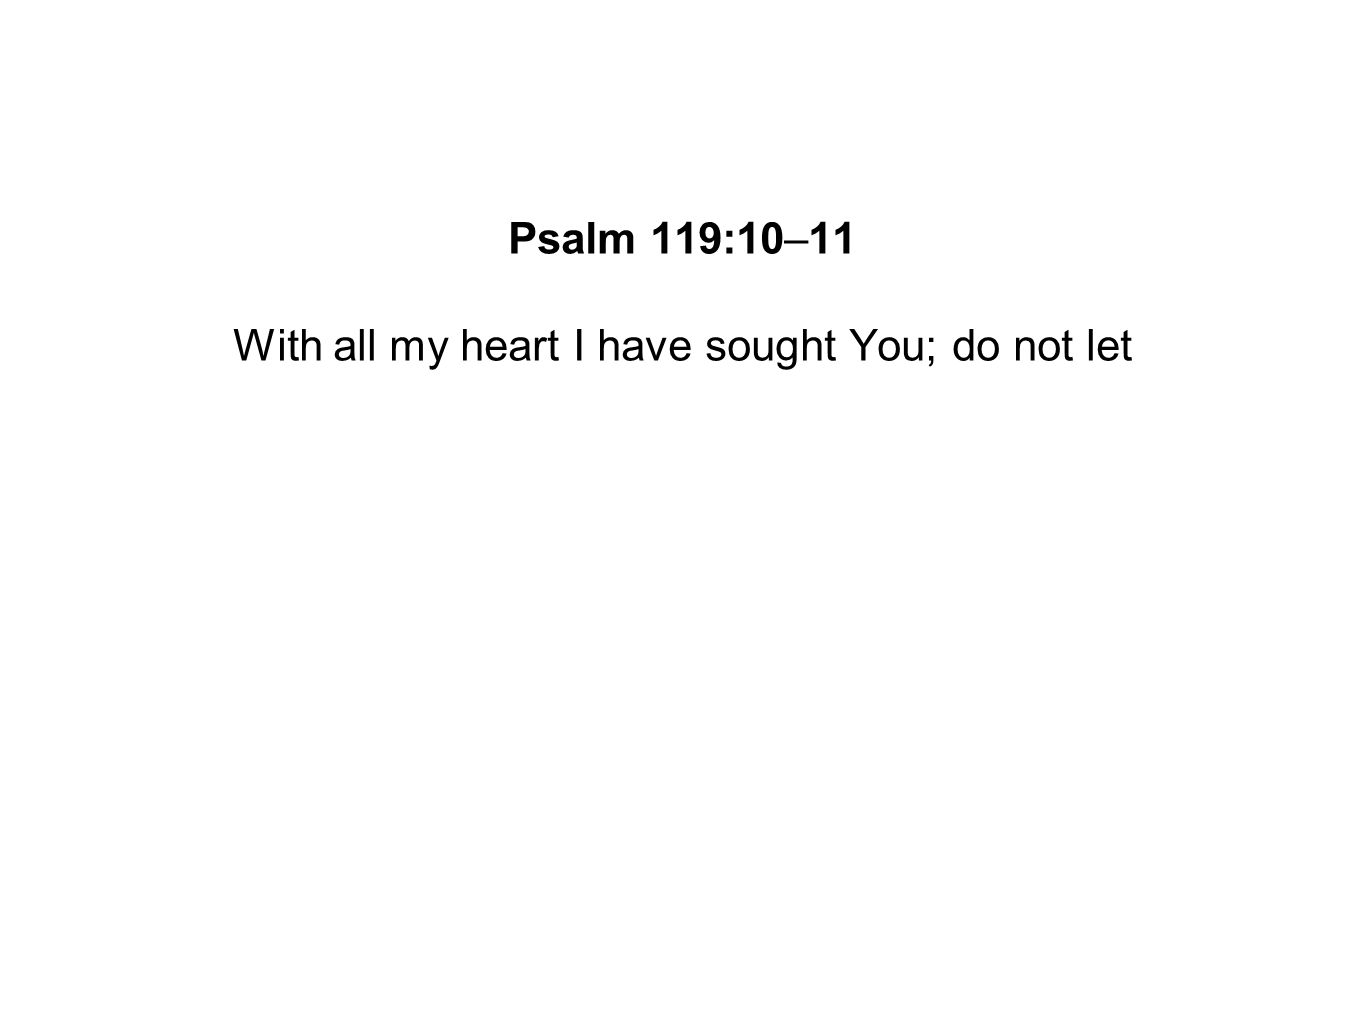 With all my heart I have sought You; do not let